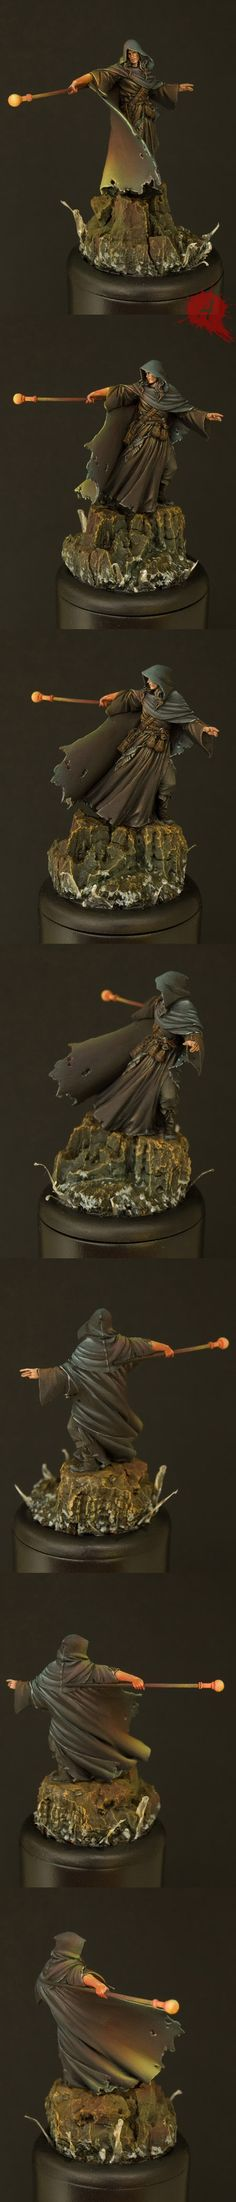 Nocturna Models -The Sorcerer boxart V Painted by Javier Gonzalez aka Arsies Warhammer Fantasy, Fantasy Rpg, Warhammer 40k, Fantasy Inspiration, Painting Inspiration, Tabletop, Fantasy Miniatures, Mini Paintings, Figure Model